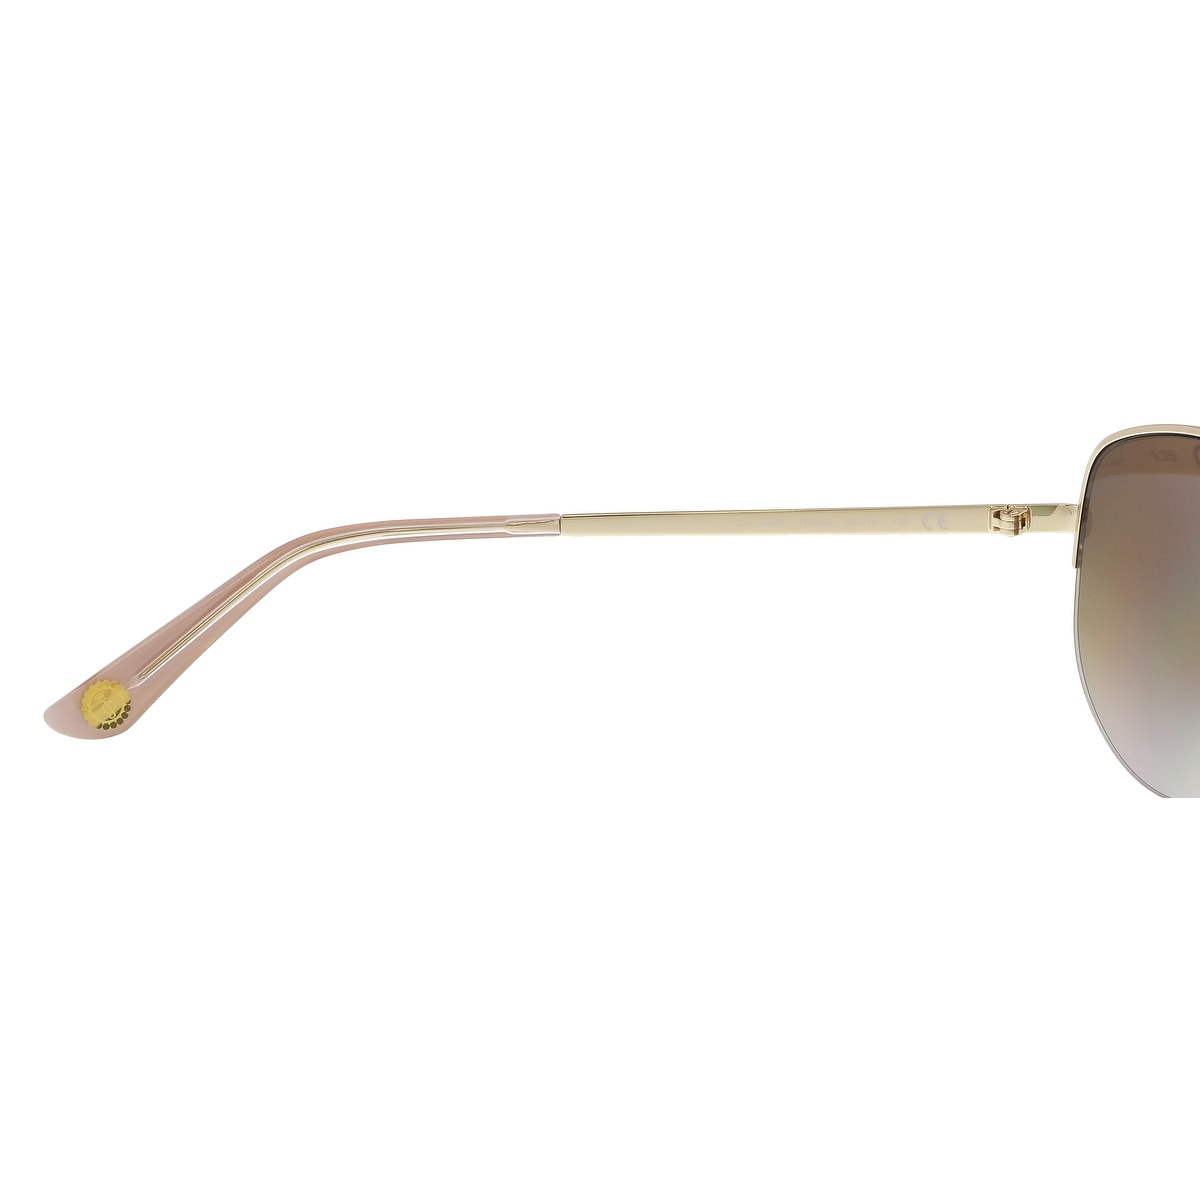 a41e16c0d0 Shop Juicy Couture JU 594 S 03YG NQ Light Gold Aviator Sunglasses -  60-15-135 - Free Shipping Today - Overstock - 21158063